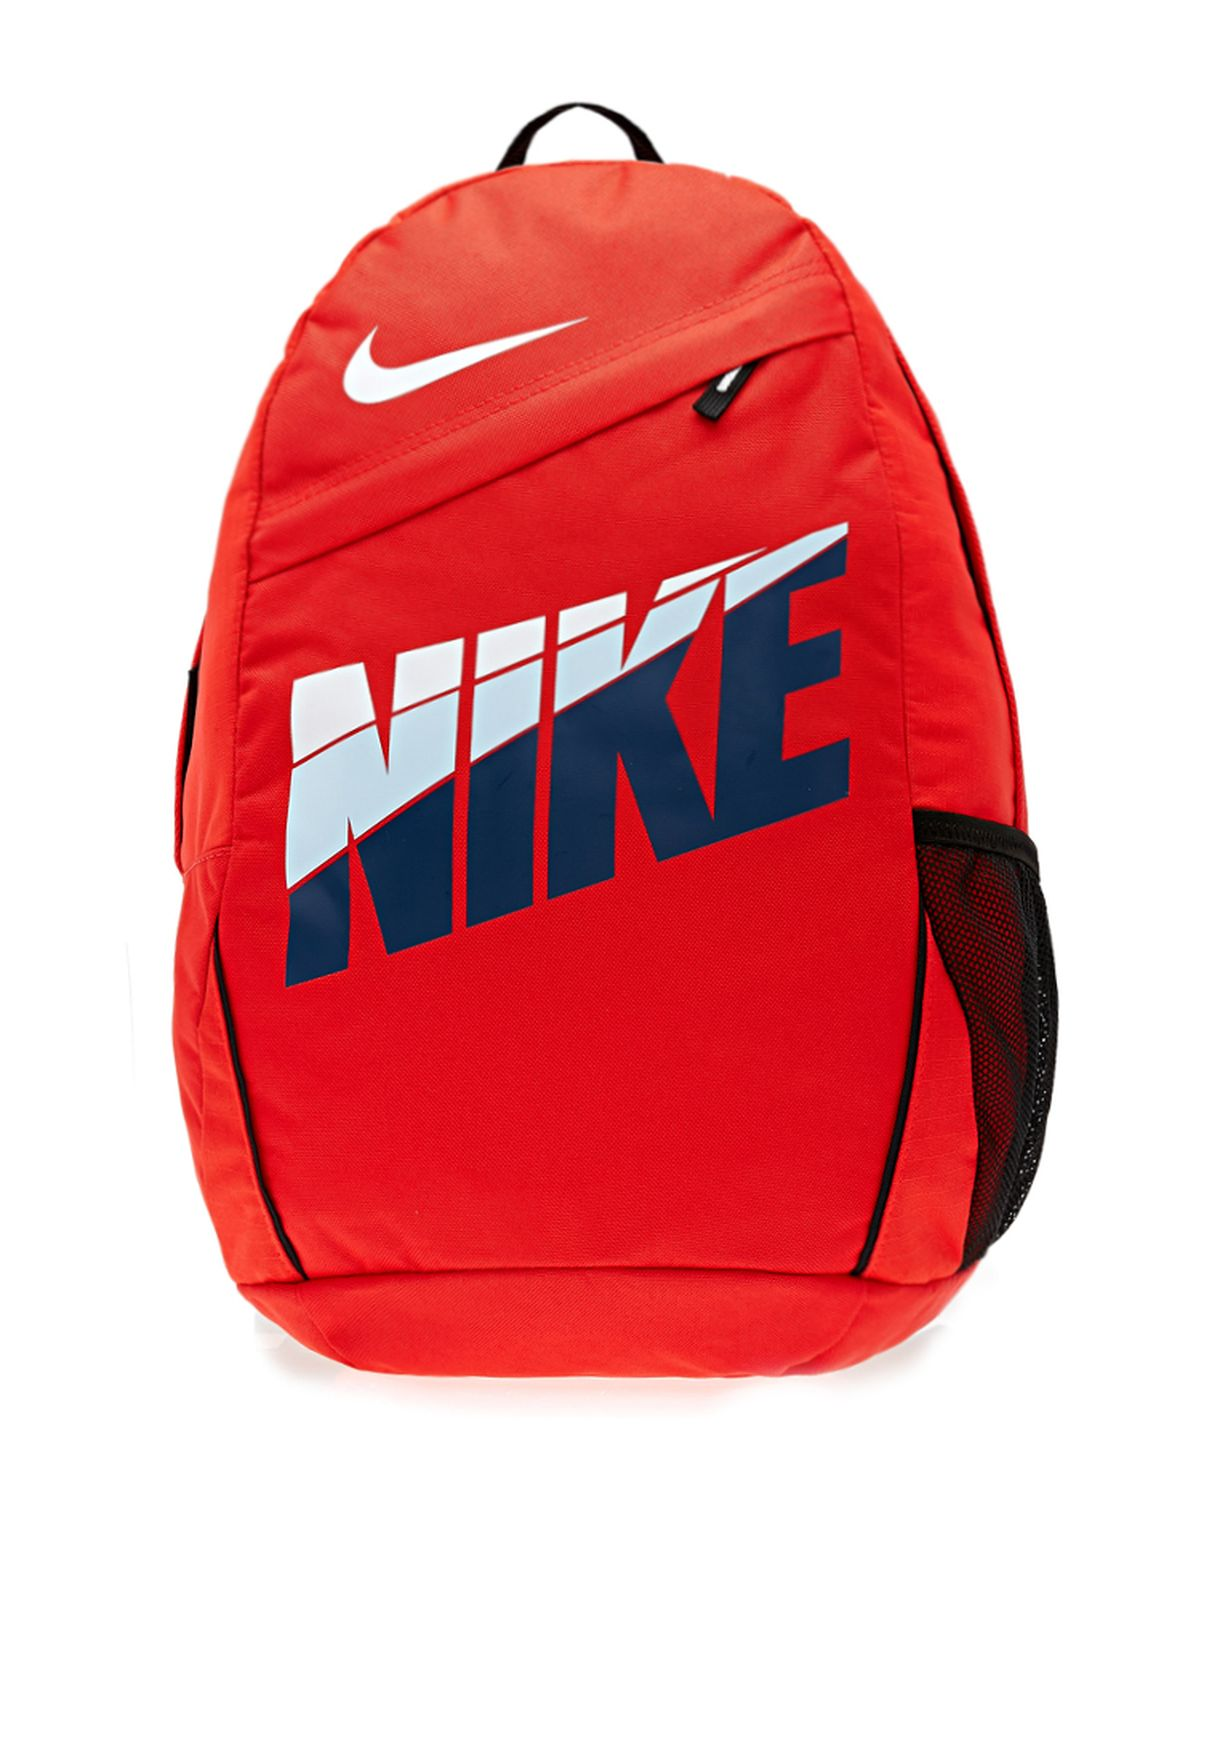 98c20527db Shop Nike red Classic Turf Backpack NEQP-BA4379-663 for Men in ...